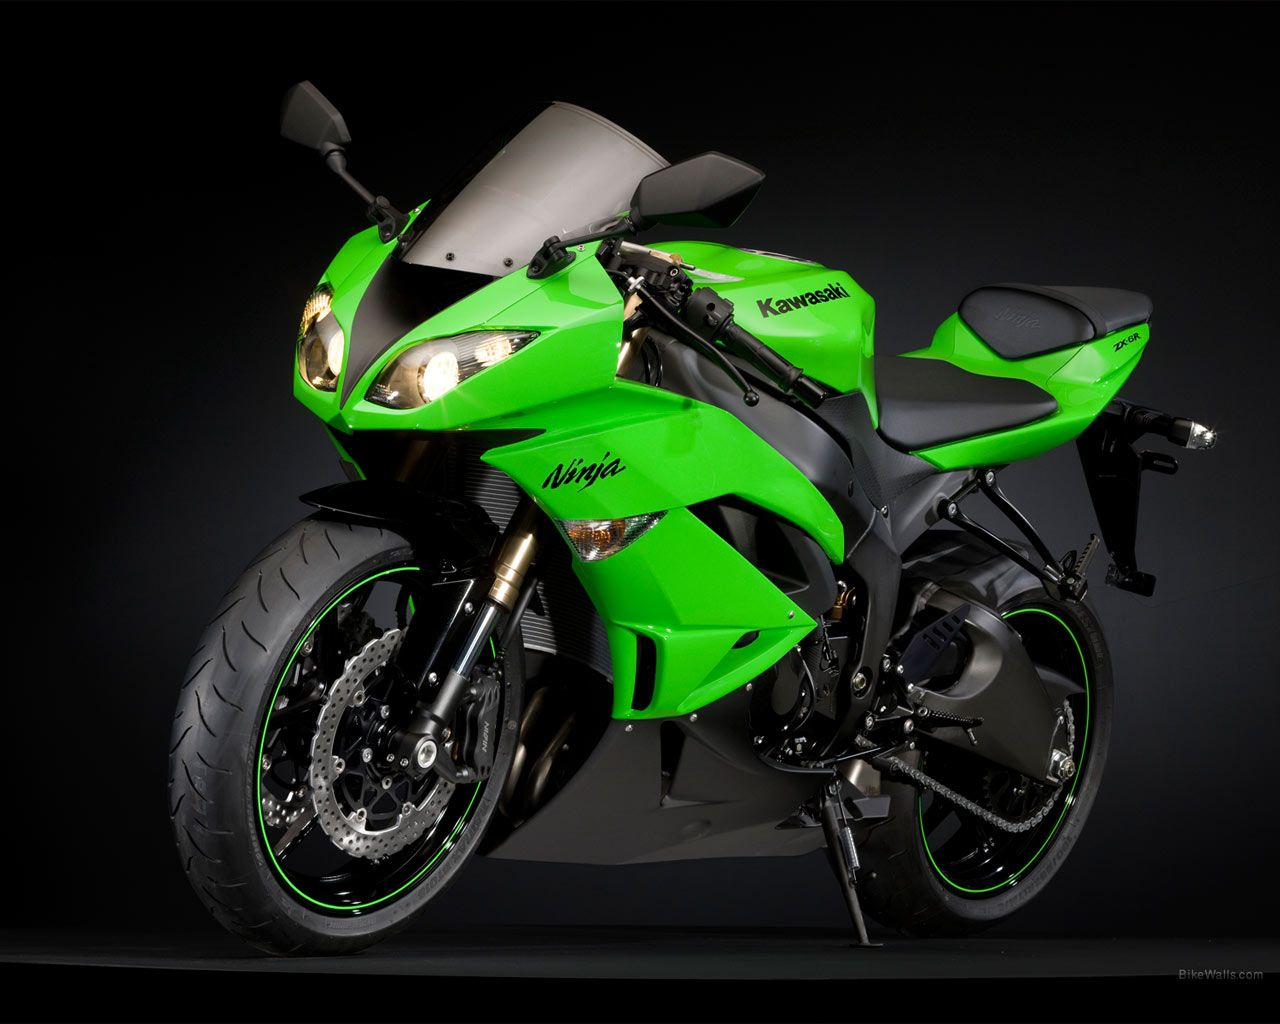 kawasaki ninja hd wallpapers backgrounds wallpaper | wallpapers for